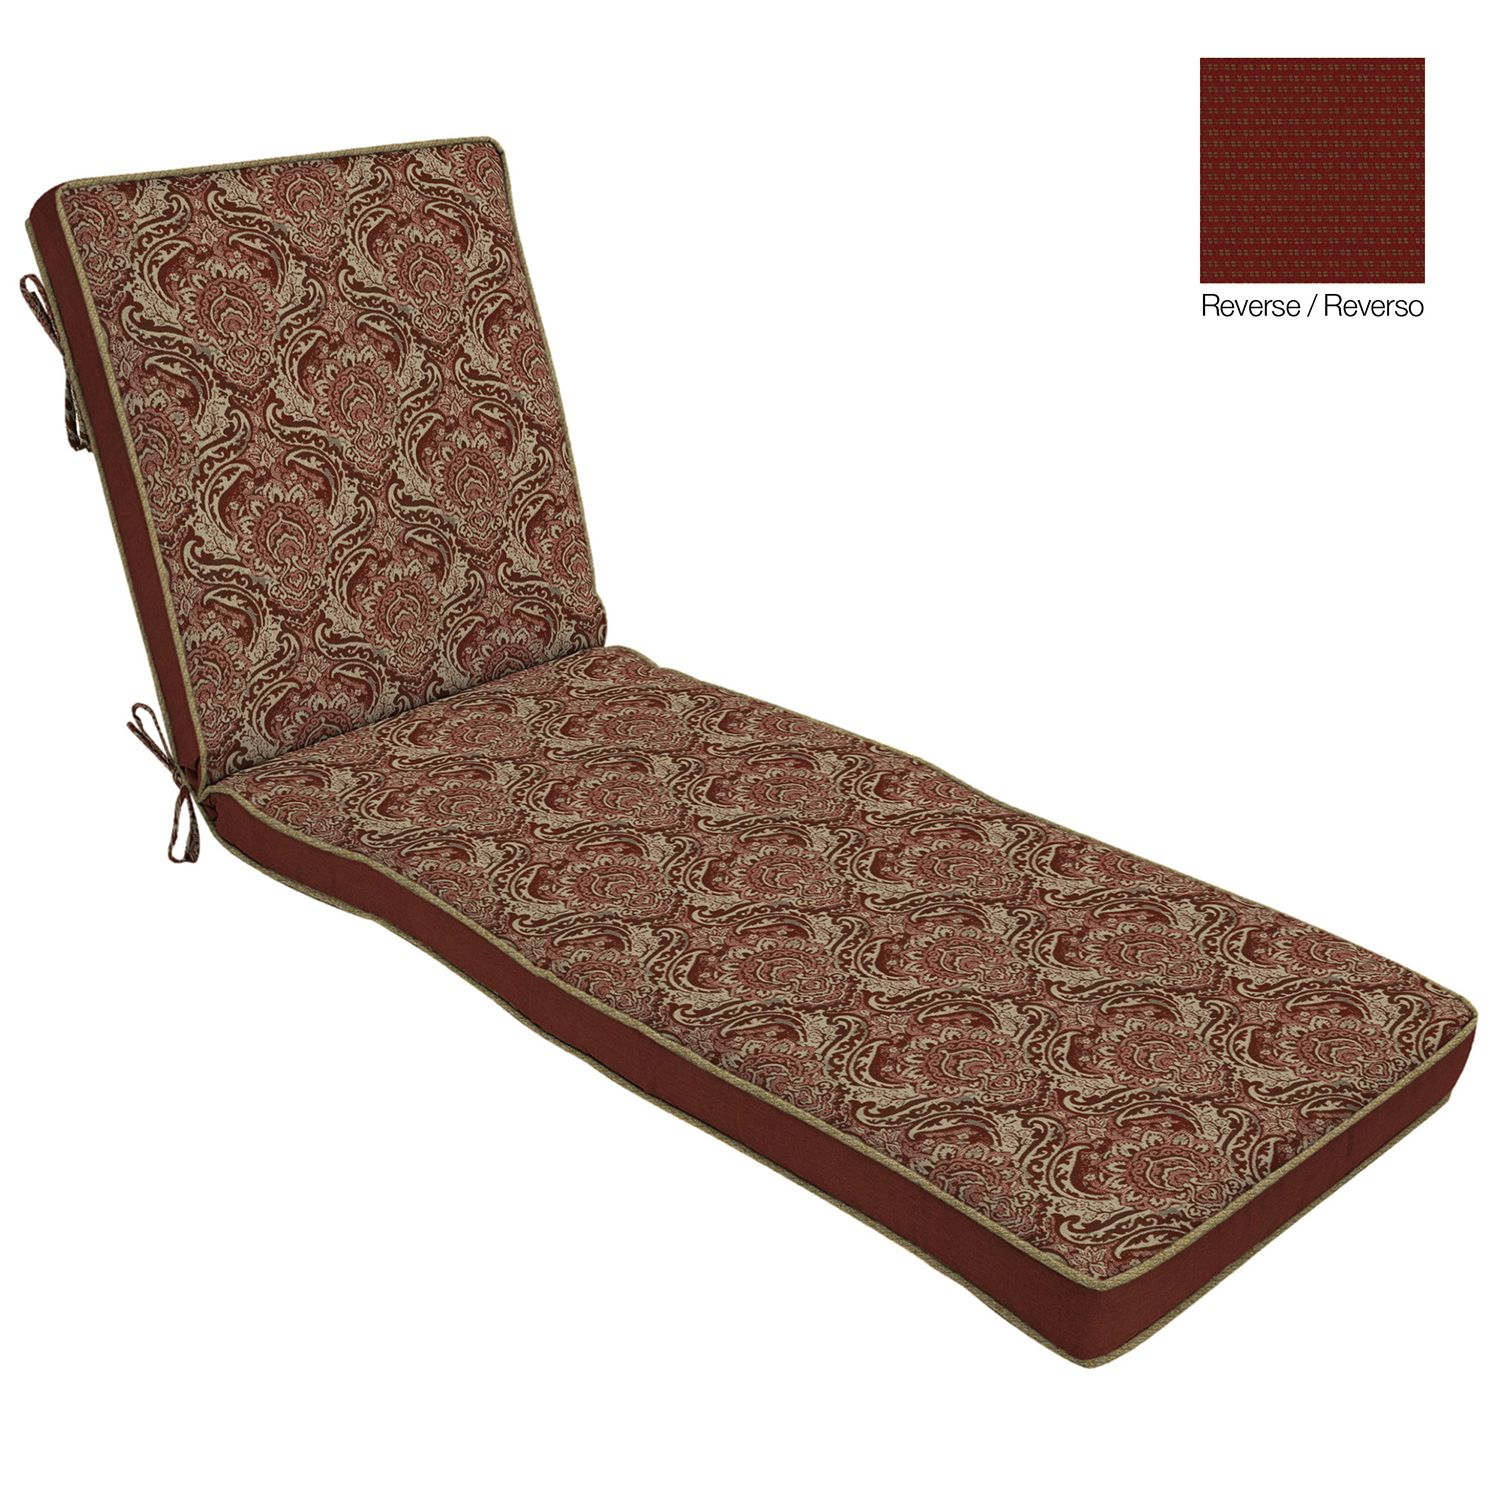 Red Chaise Lounge Cushions Outdoor Chair Pads & Cushions Home